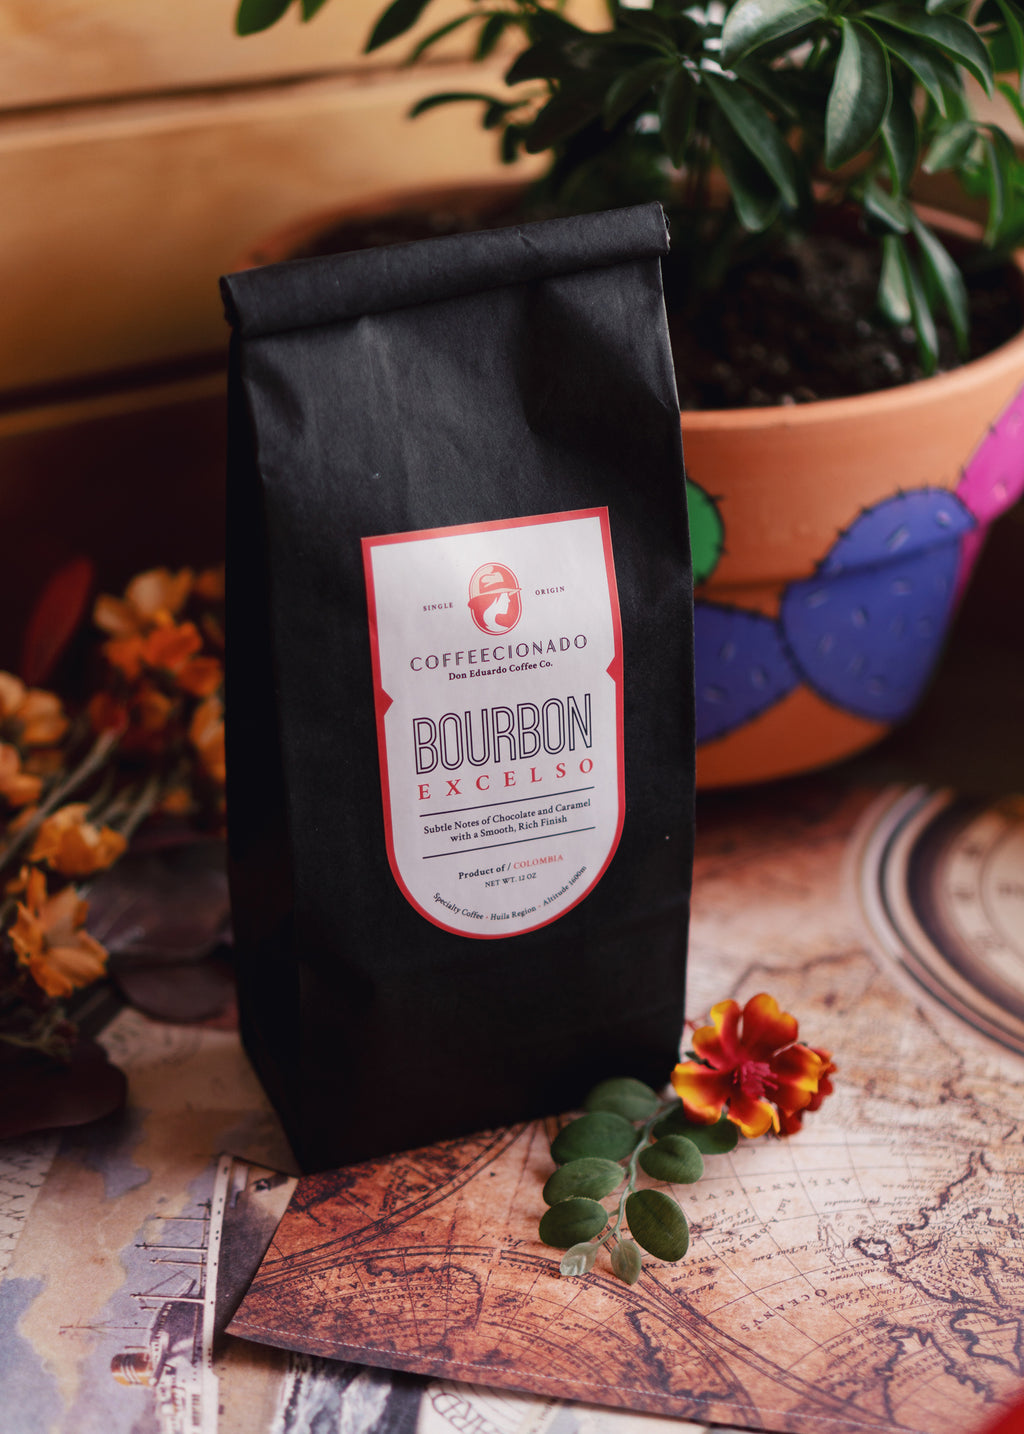 Coffee Coffecionado in San Antonio Bourbon Excelso